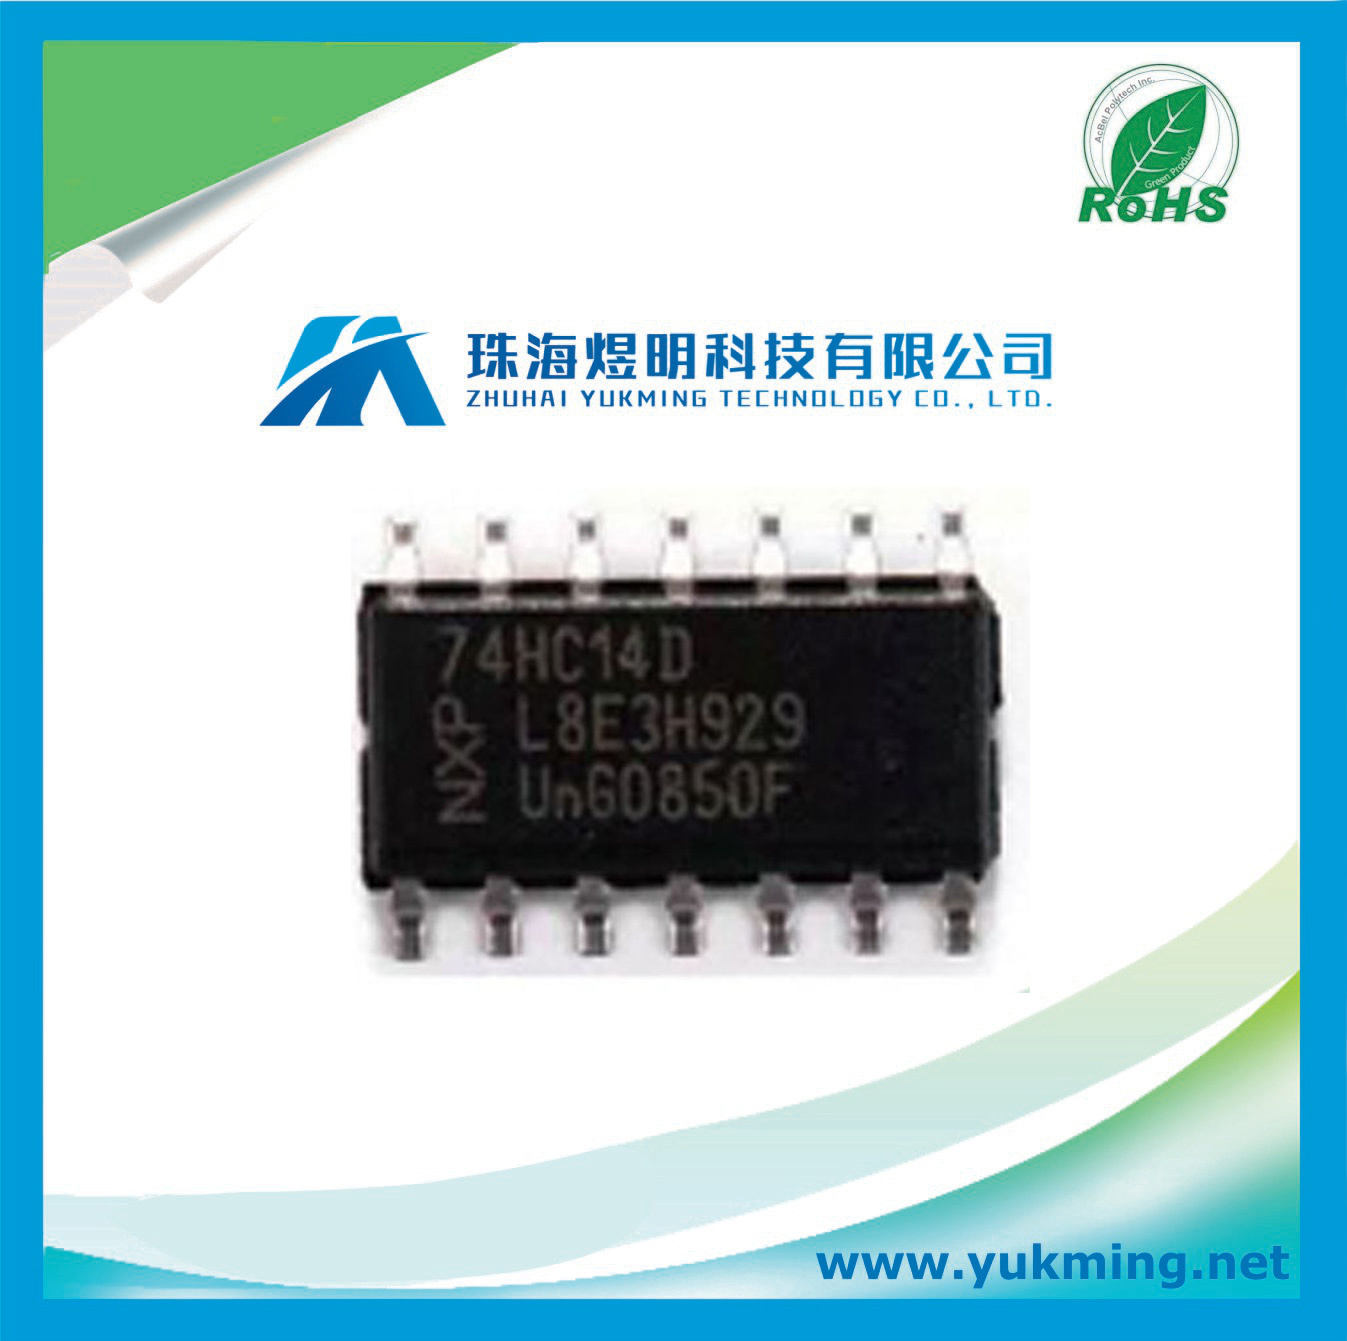 China Hex Inverting Schmitt Trigger Ic 74hc14d Integrated Circuit Circuits Electronic Component Electronics Stock